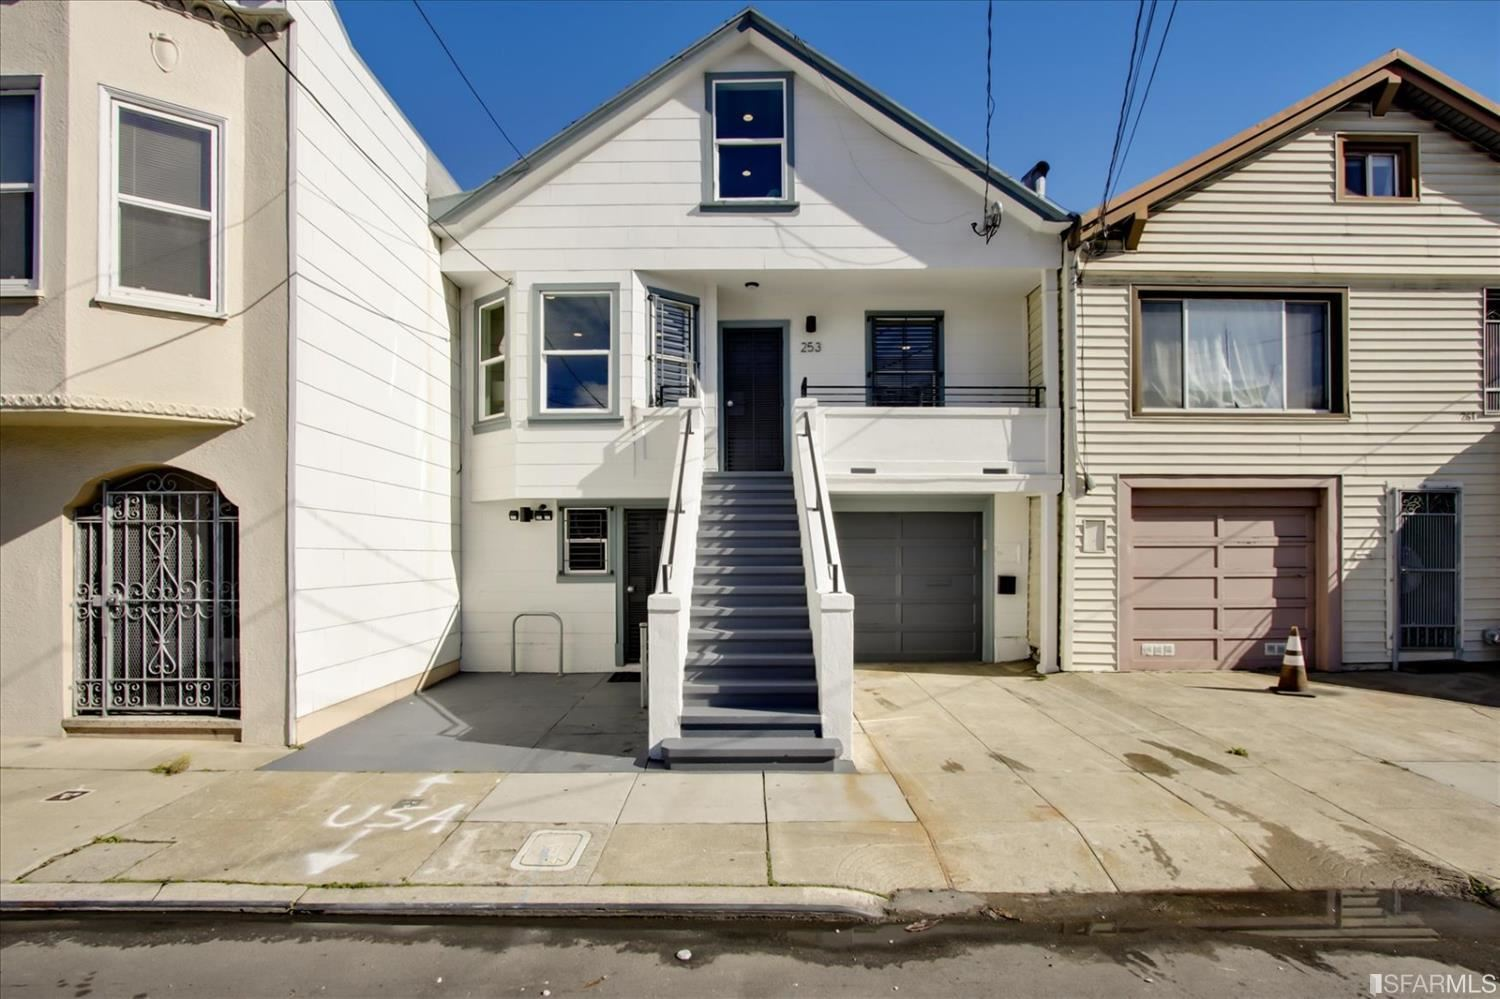 253 Charter Oak Avenue, San Francisco, CA 94124 - #: 421516636